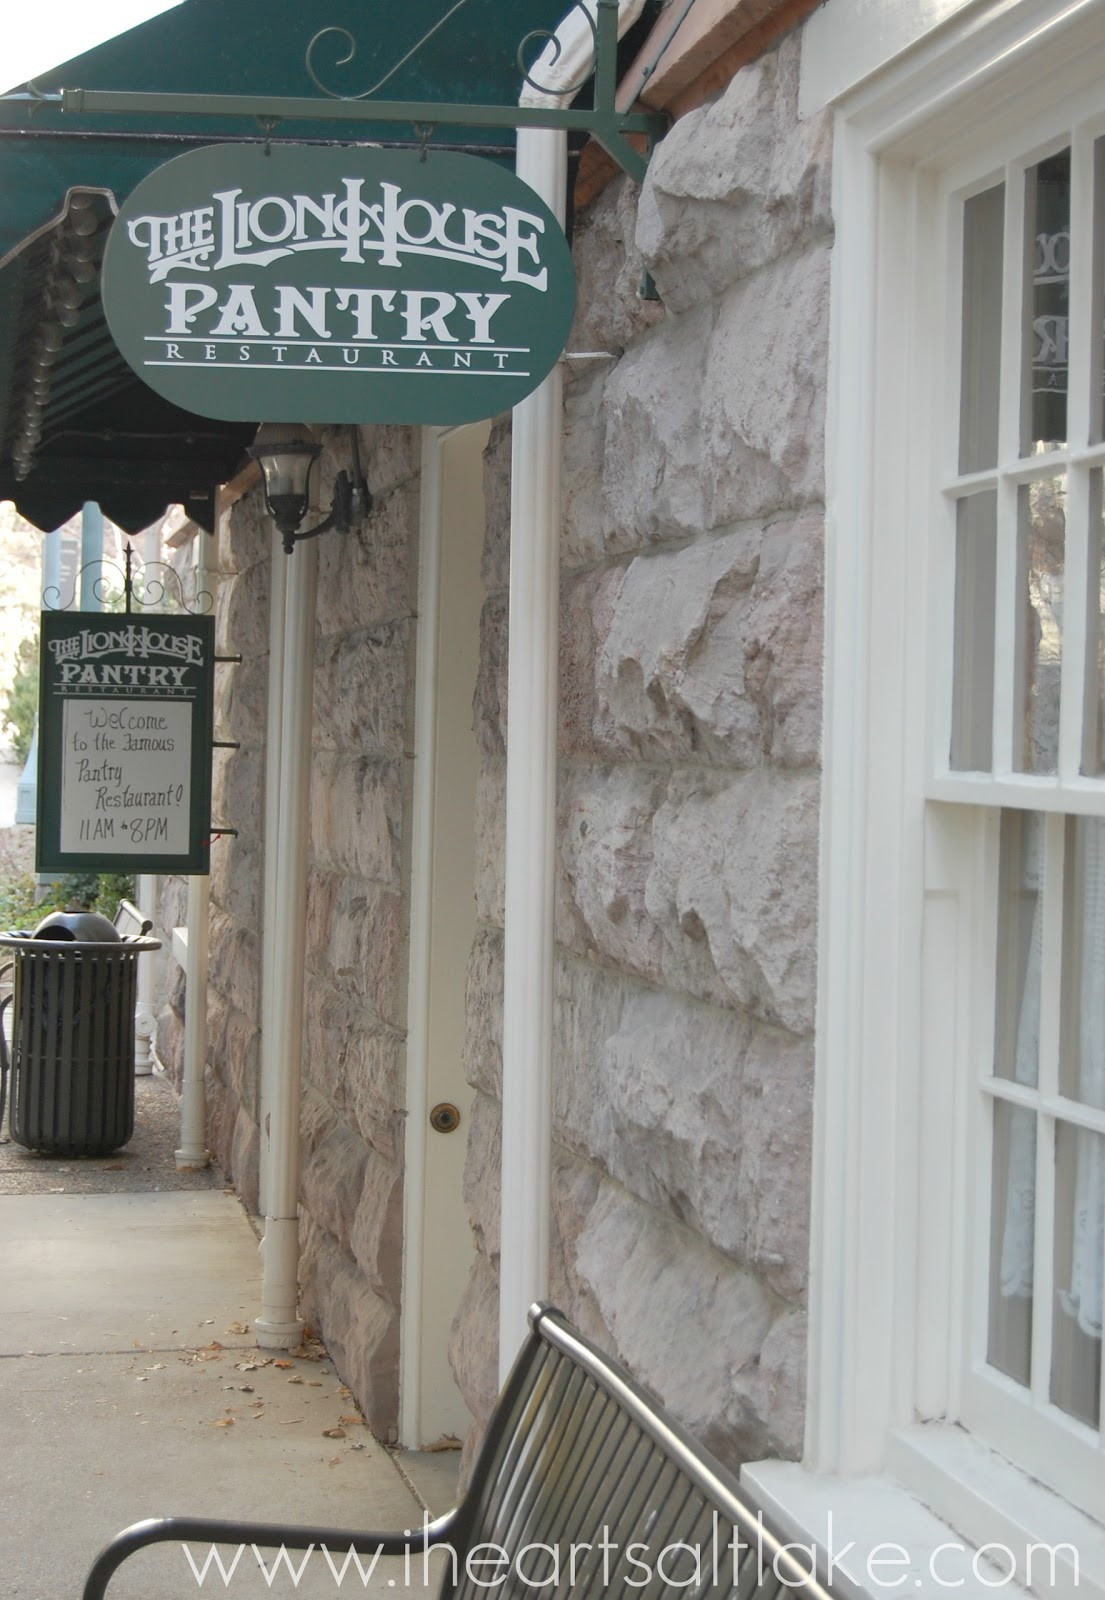 Best ideas about Lion House Pantry . Save or Pin I Heart Salt Lake The Lion House Pantry Restaurant Now.